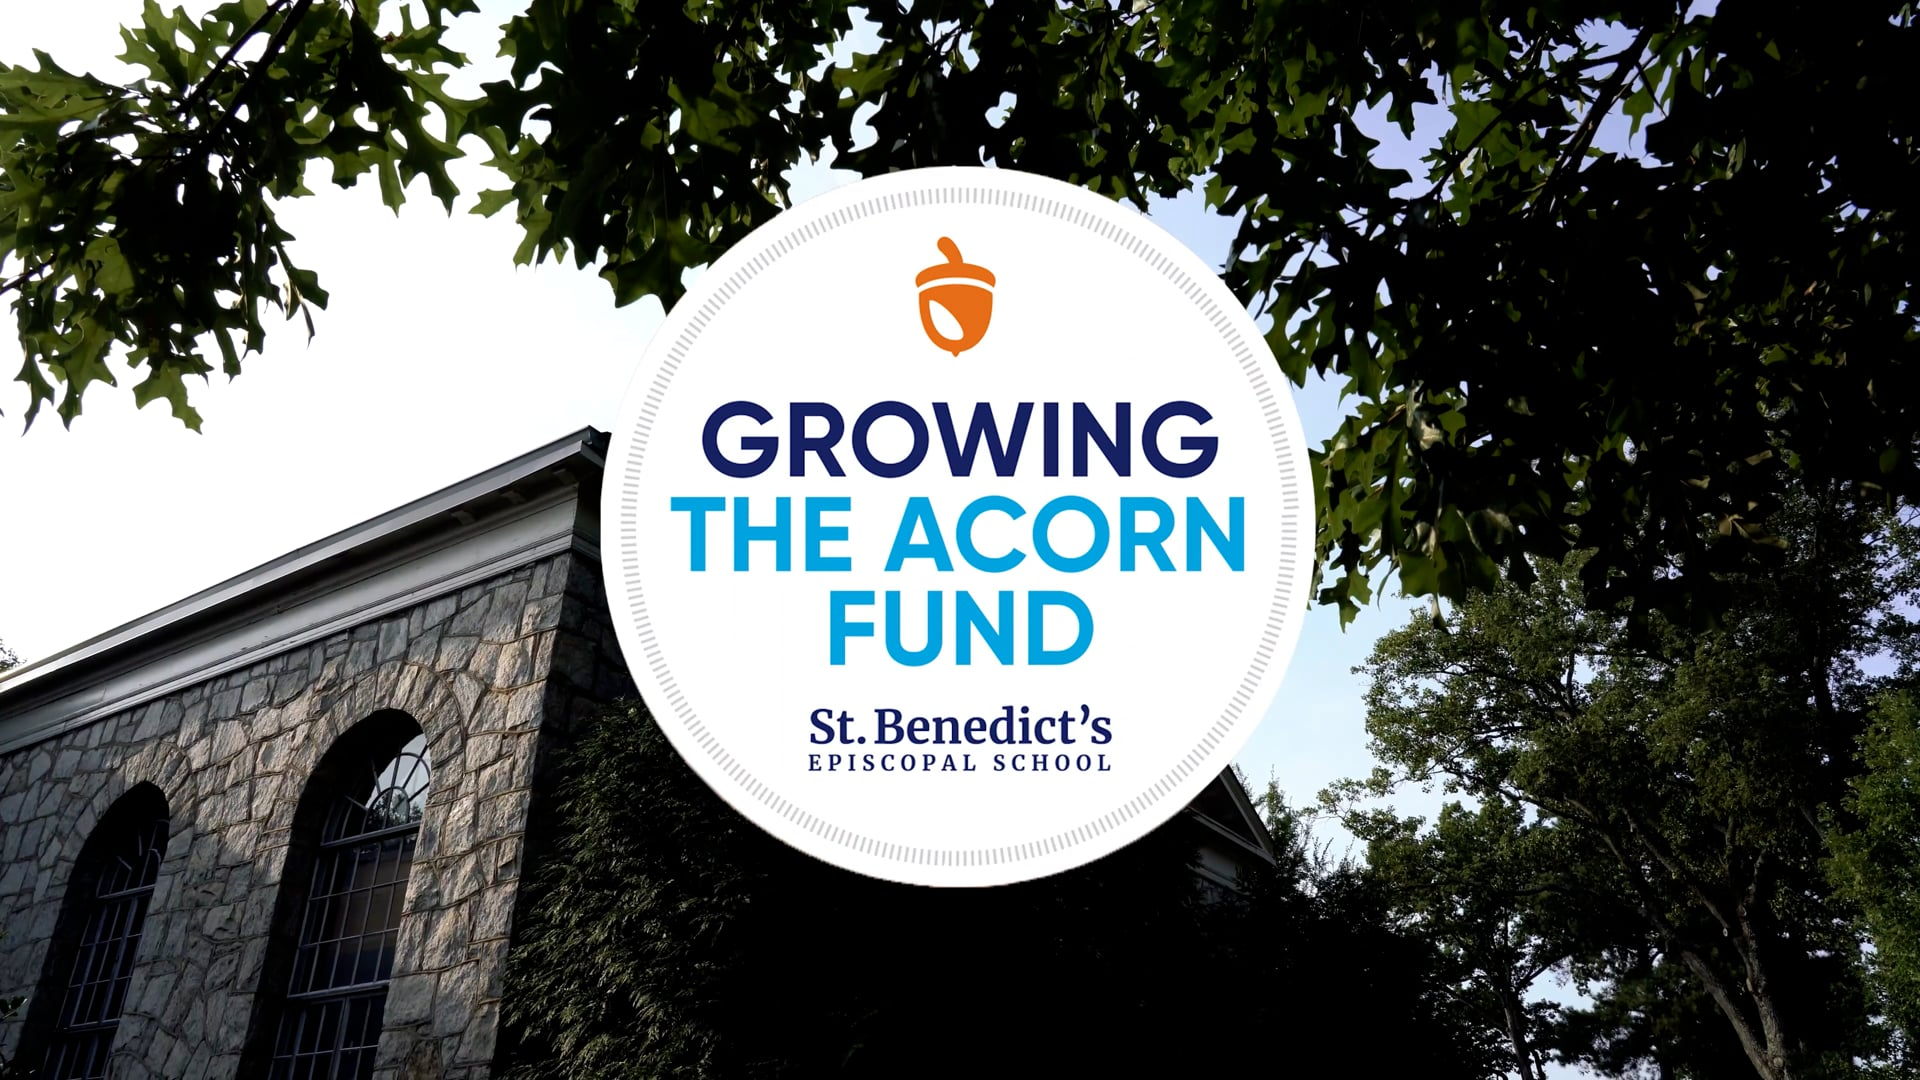 Support The Acorn Fund